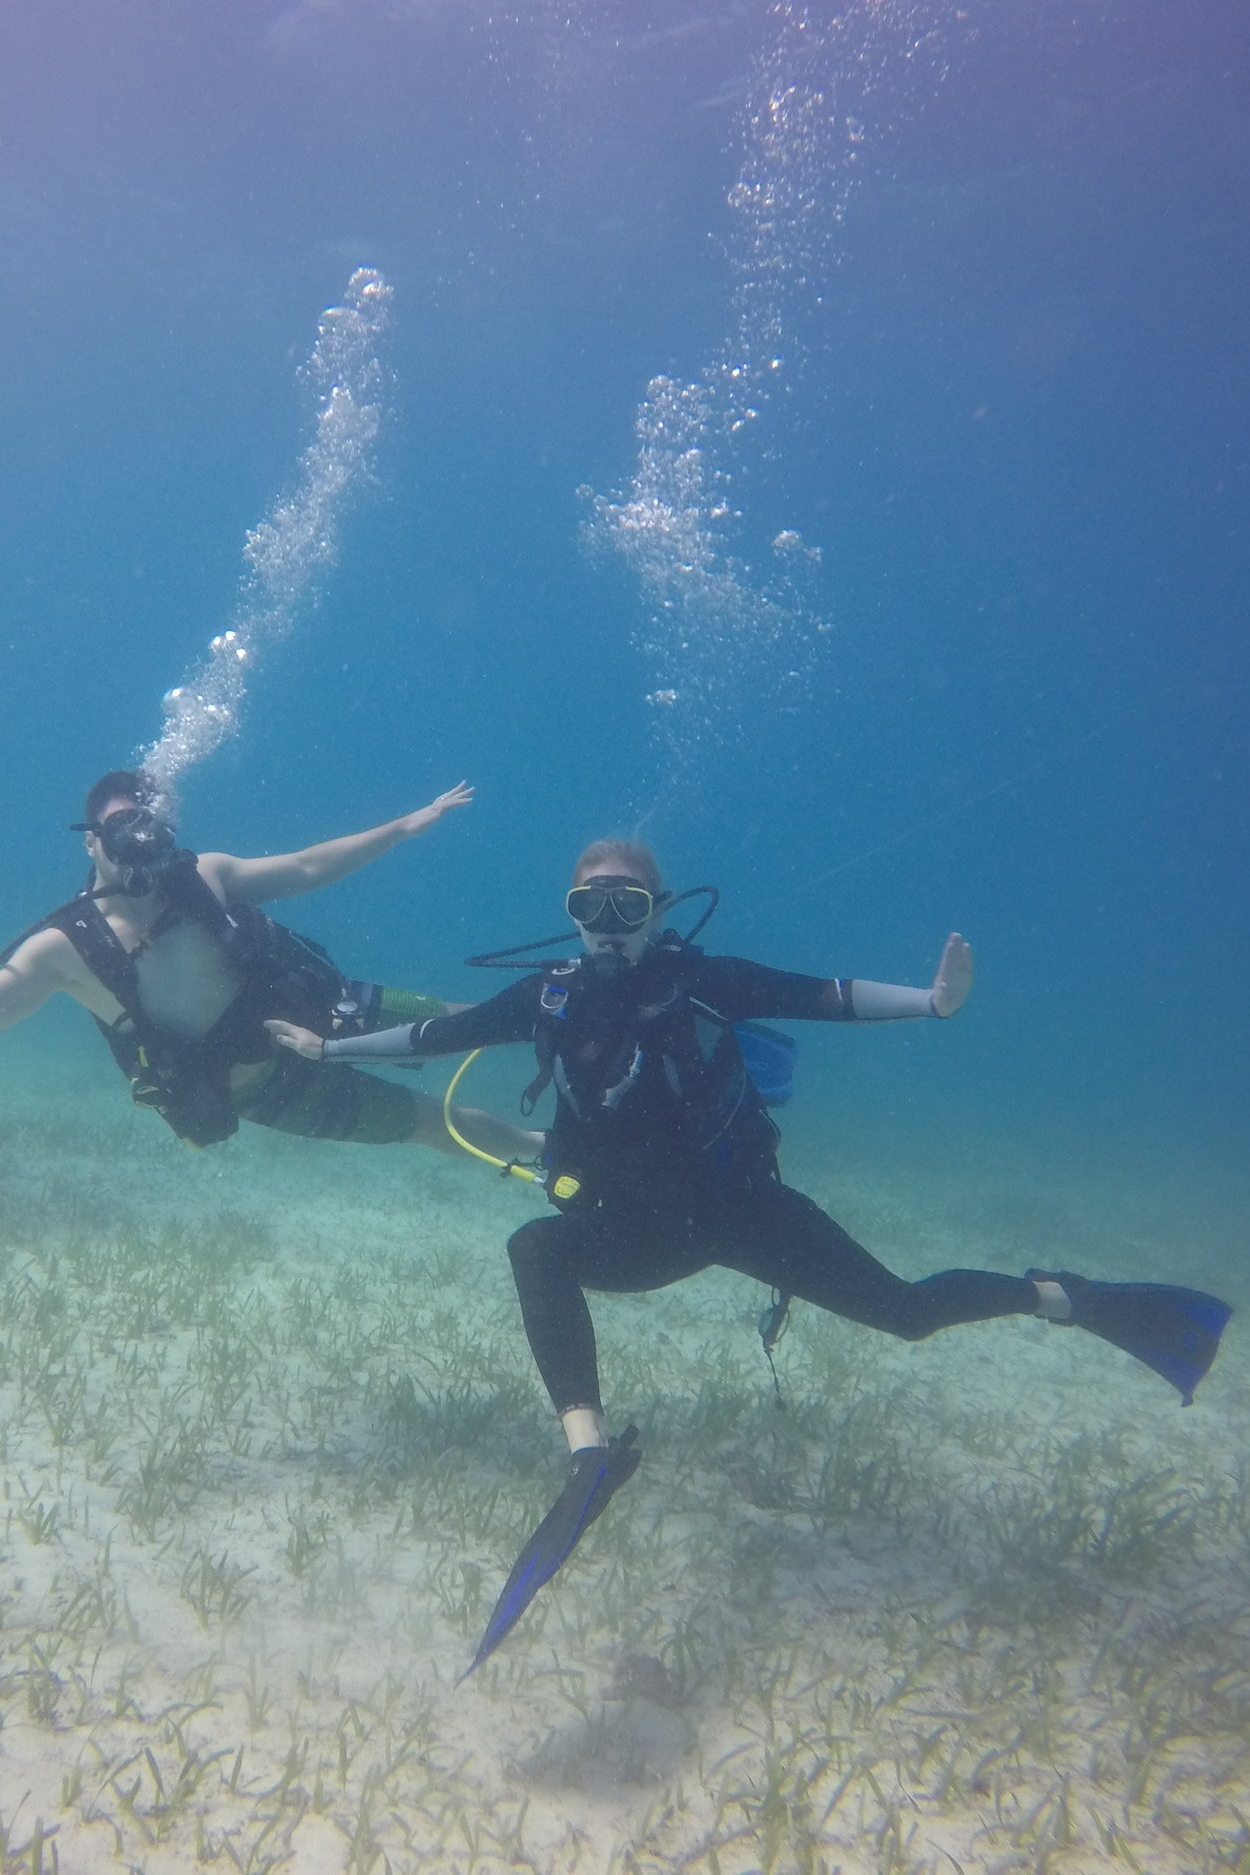 Barrier Reef - It wouldn't be a trip to Belize without exploring underwater. Belize is home to the largest living barrier reef in the world. Go fishing, snorkeling, SCUBA diving, and more. Muy'Ono is a DMC and offers the best tours, right from our resorts!